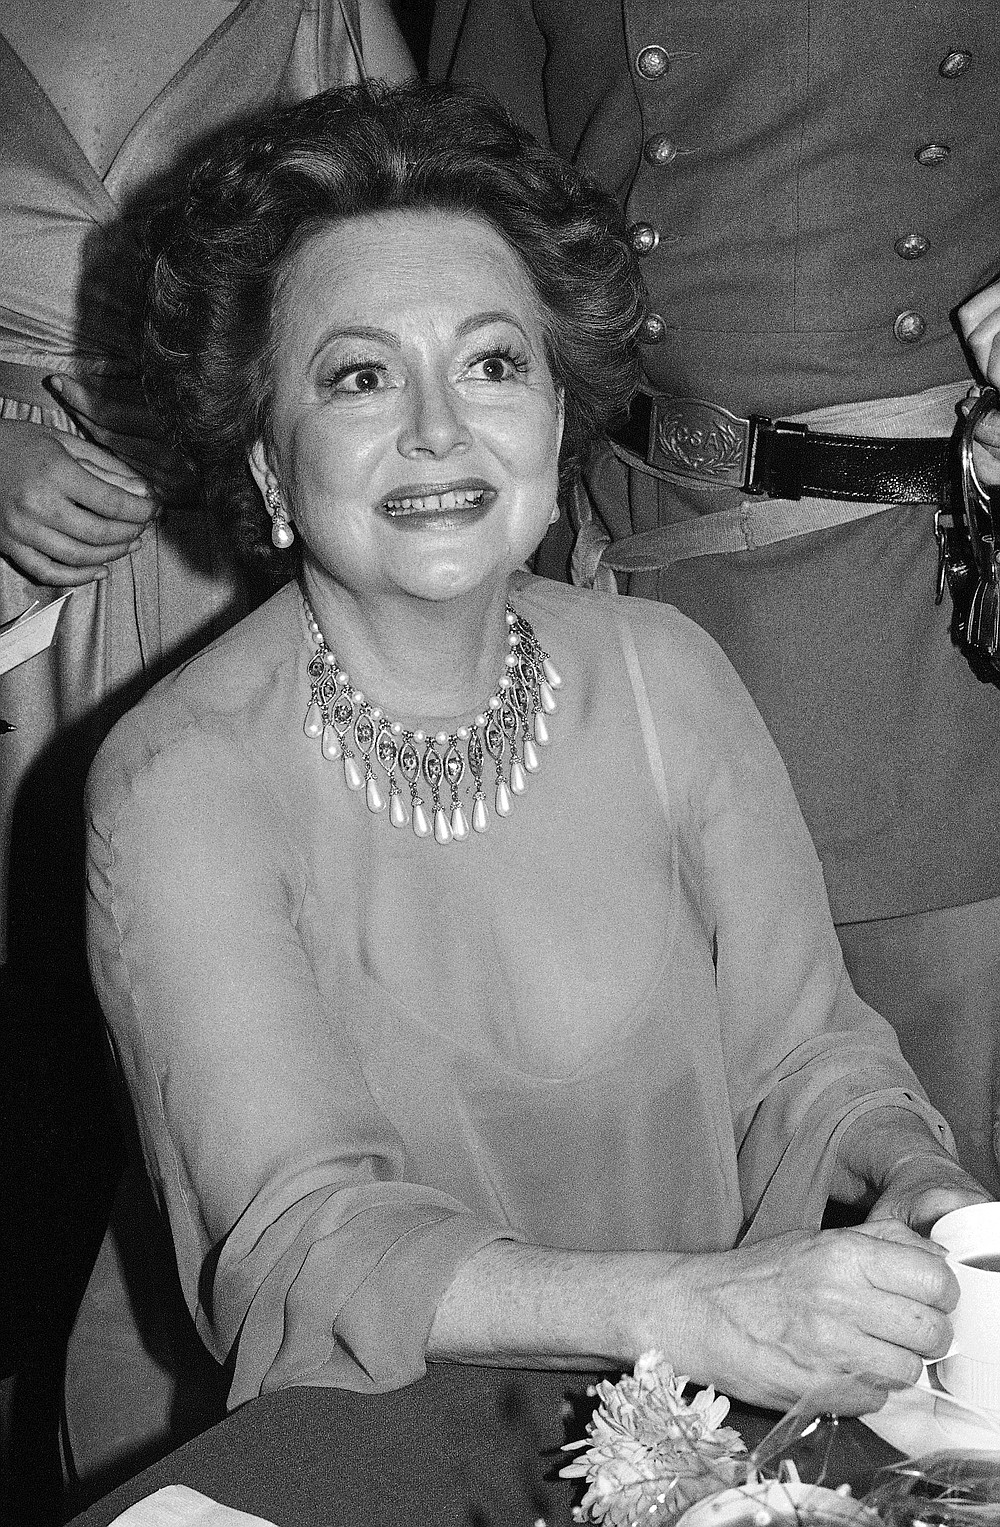 FILE - In this file photo dated Dec. 28, 1979, actress Olivia De Havilland at Hollywood dinner party. Olivia de Havilland, Oscar-winning actress has died, aged 104 in Paris,  publicist says Sunday July 26, 2020. (AP Photo/ Nick Ut, FILE)